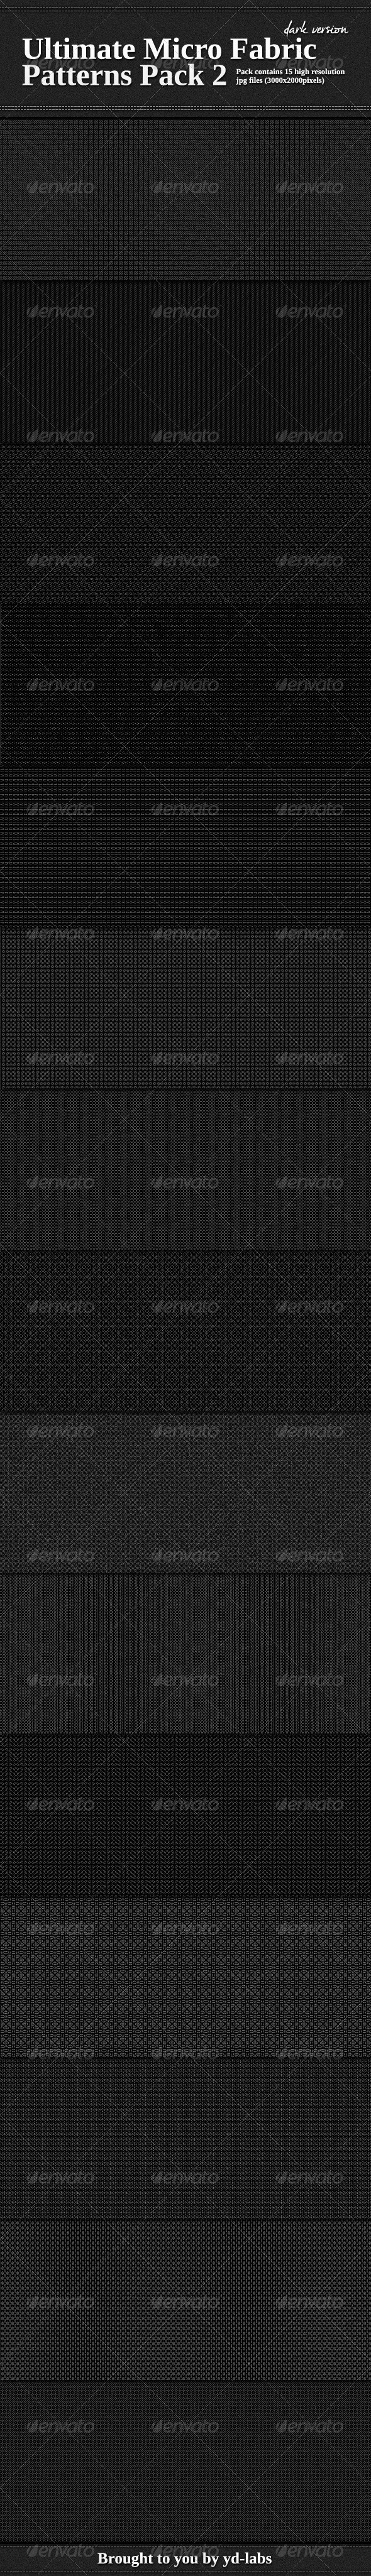 Ultimate Micro Fabric Patterns Pack 2 - Fabric Textures